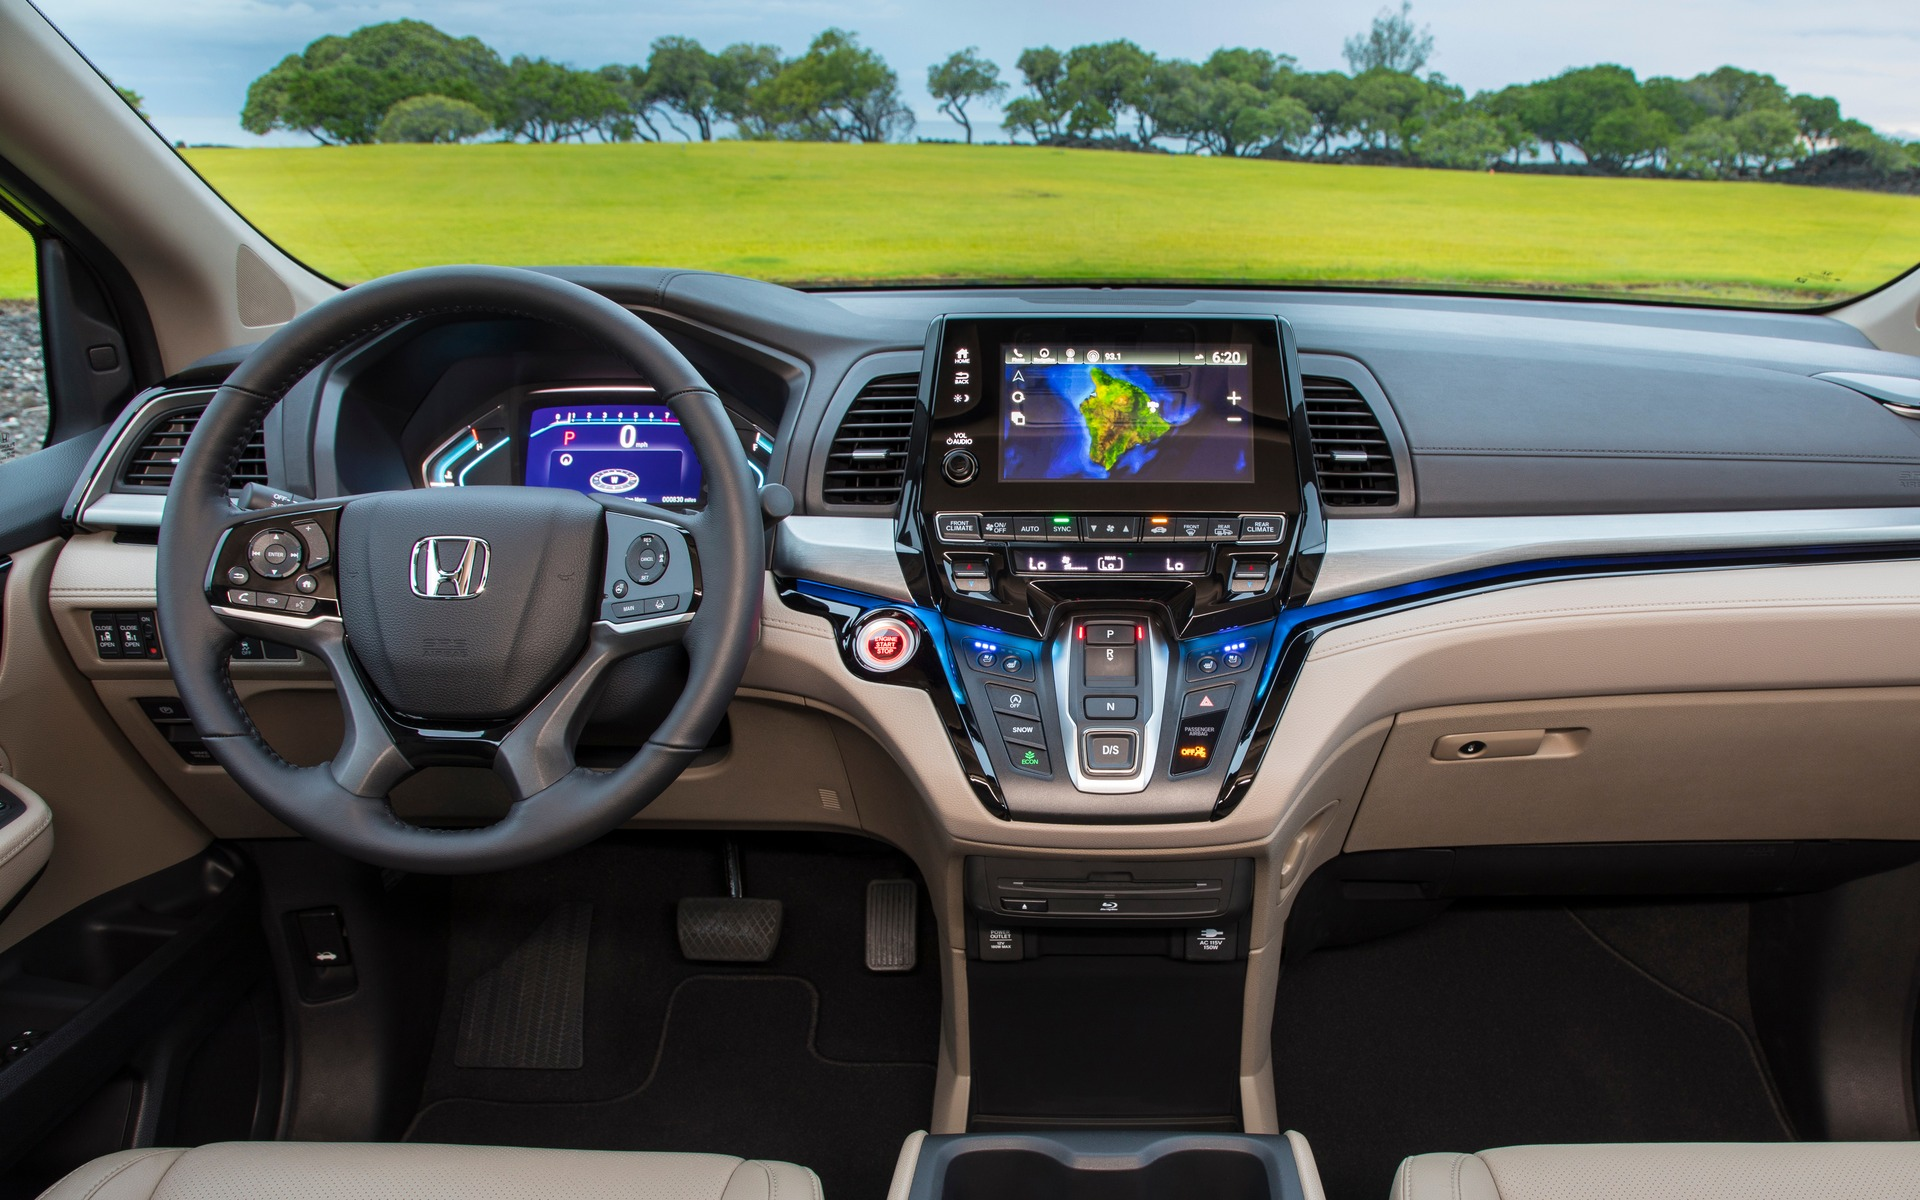 Honda Facing Class Action Lawsuit Due to Infotainment Issues